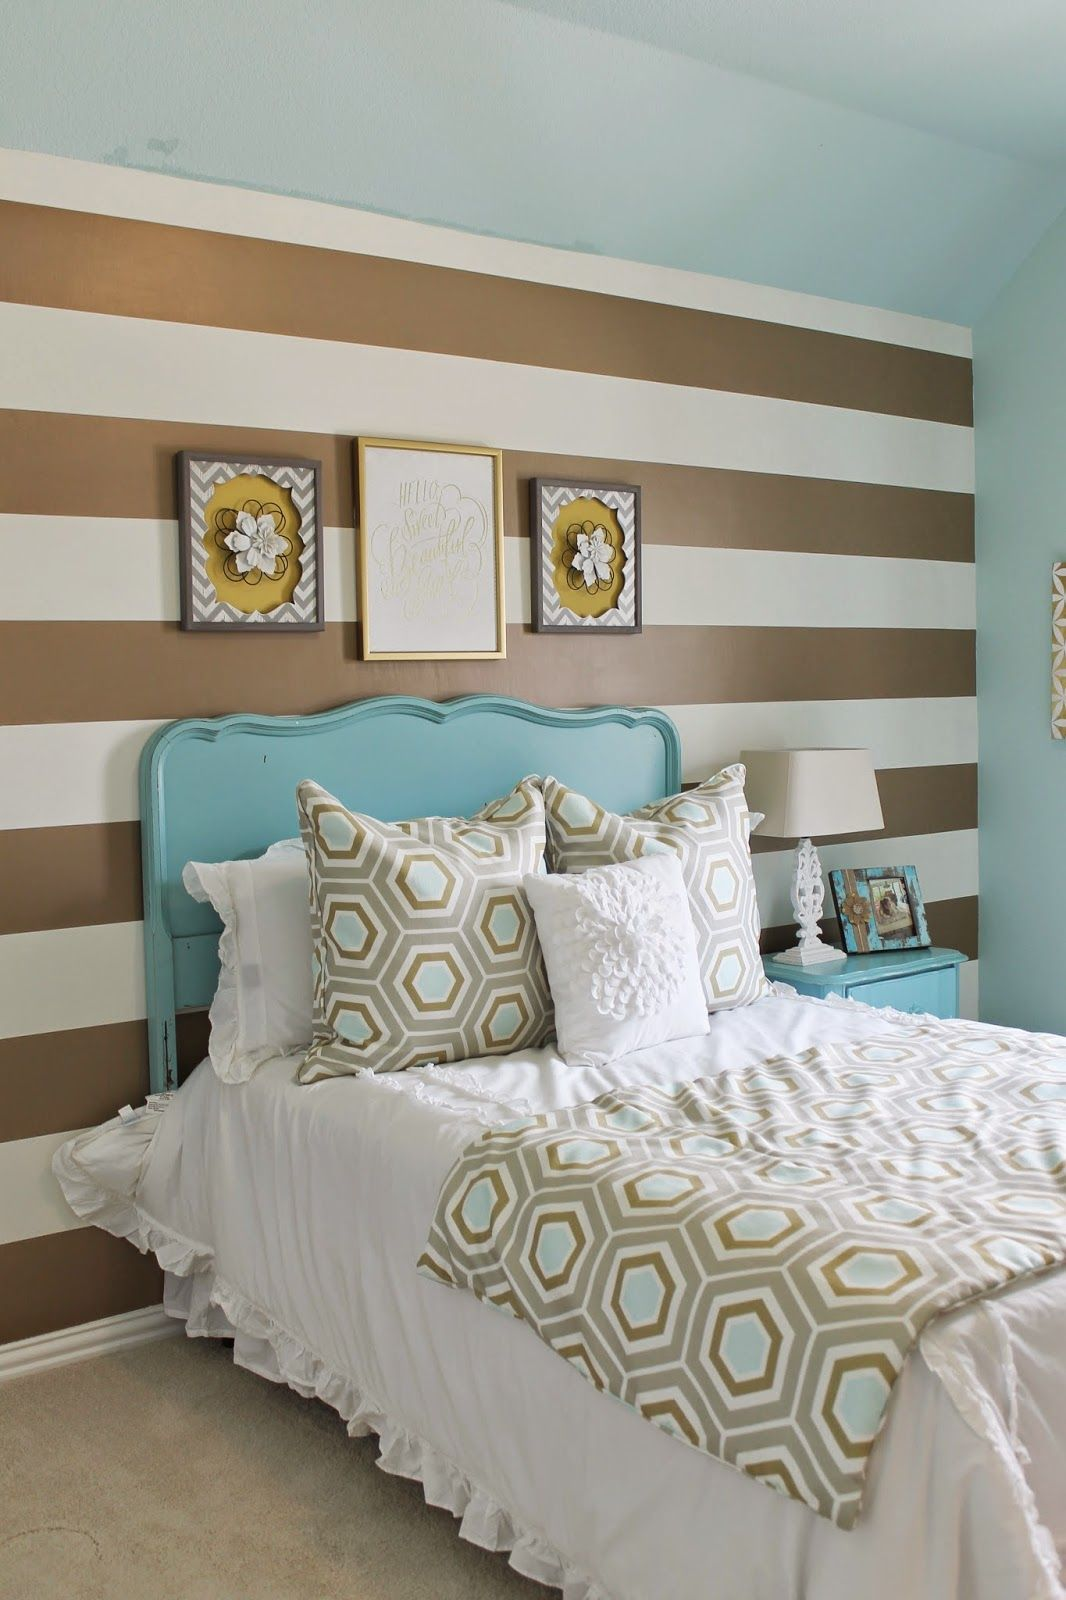 Shabby chic meets glam in this cute teens room. Gold and